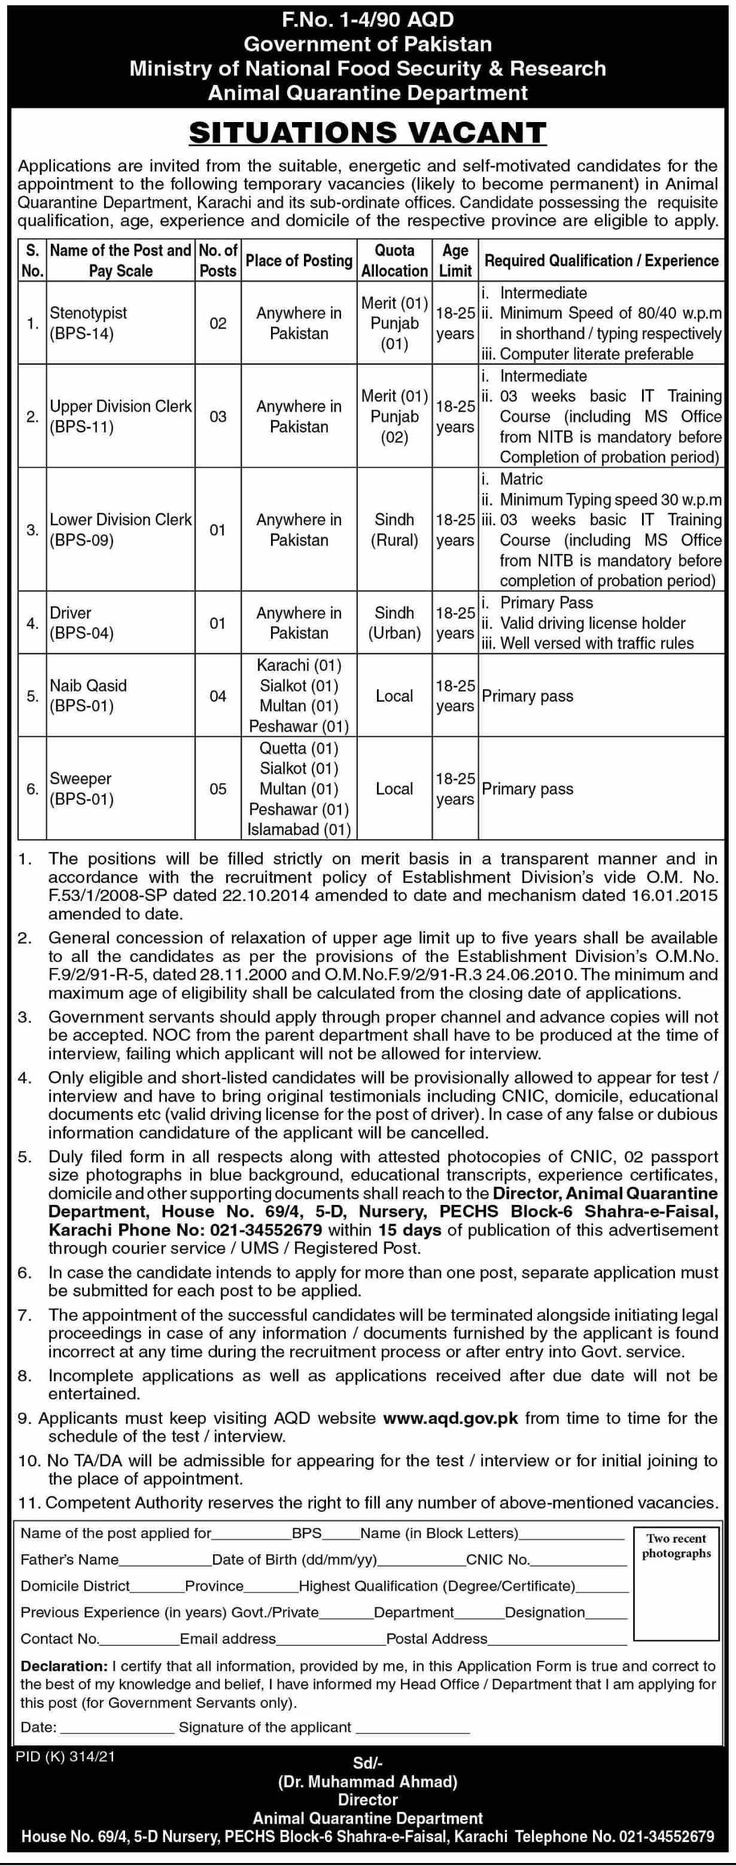 Ministry Of National Food Security & Research Government Of Pakistan Jobs 2021